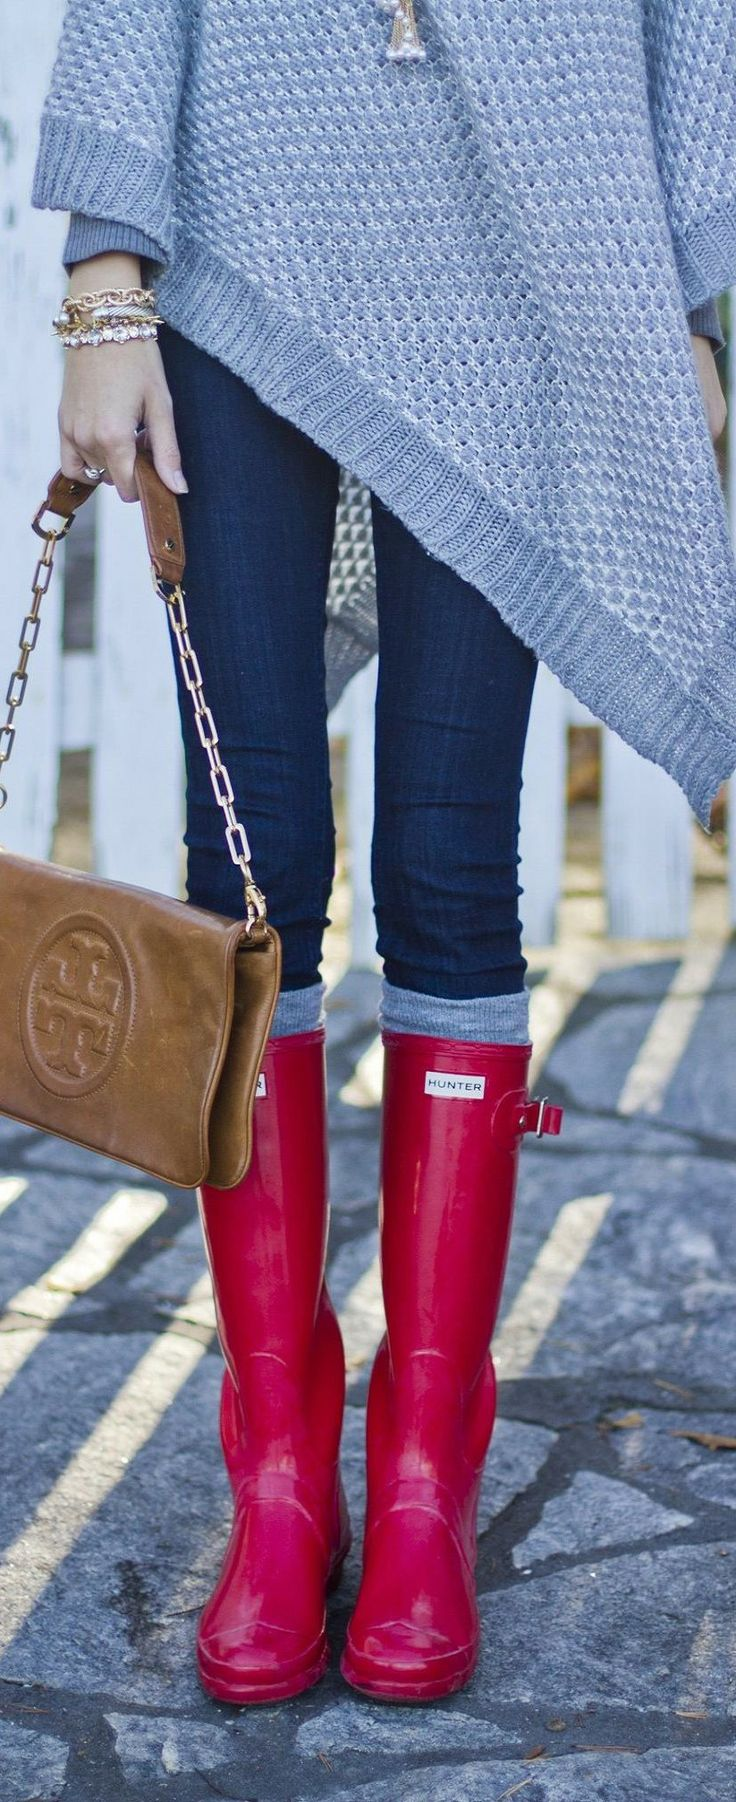 17 Best ideas about Red Hunter Rain Boots on Pinterest | Red rain ...